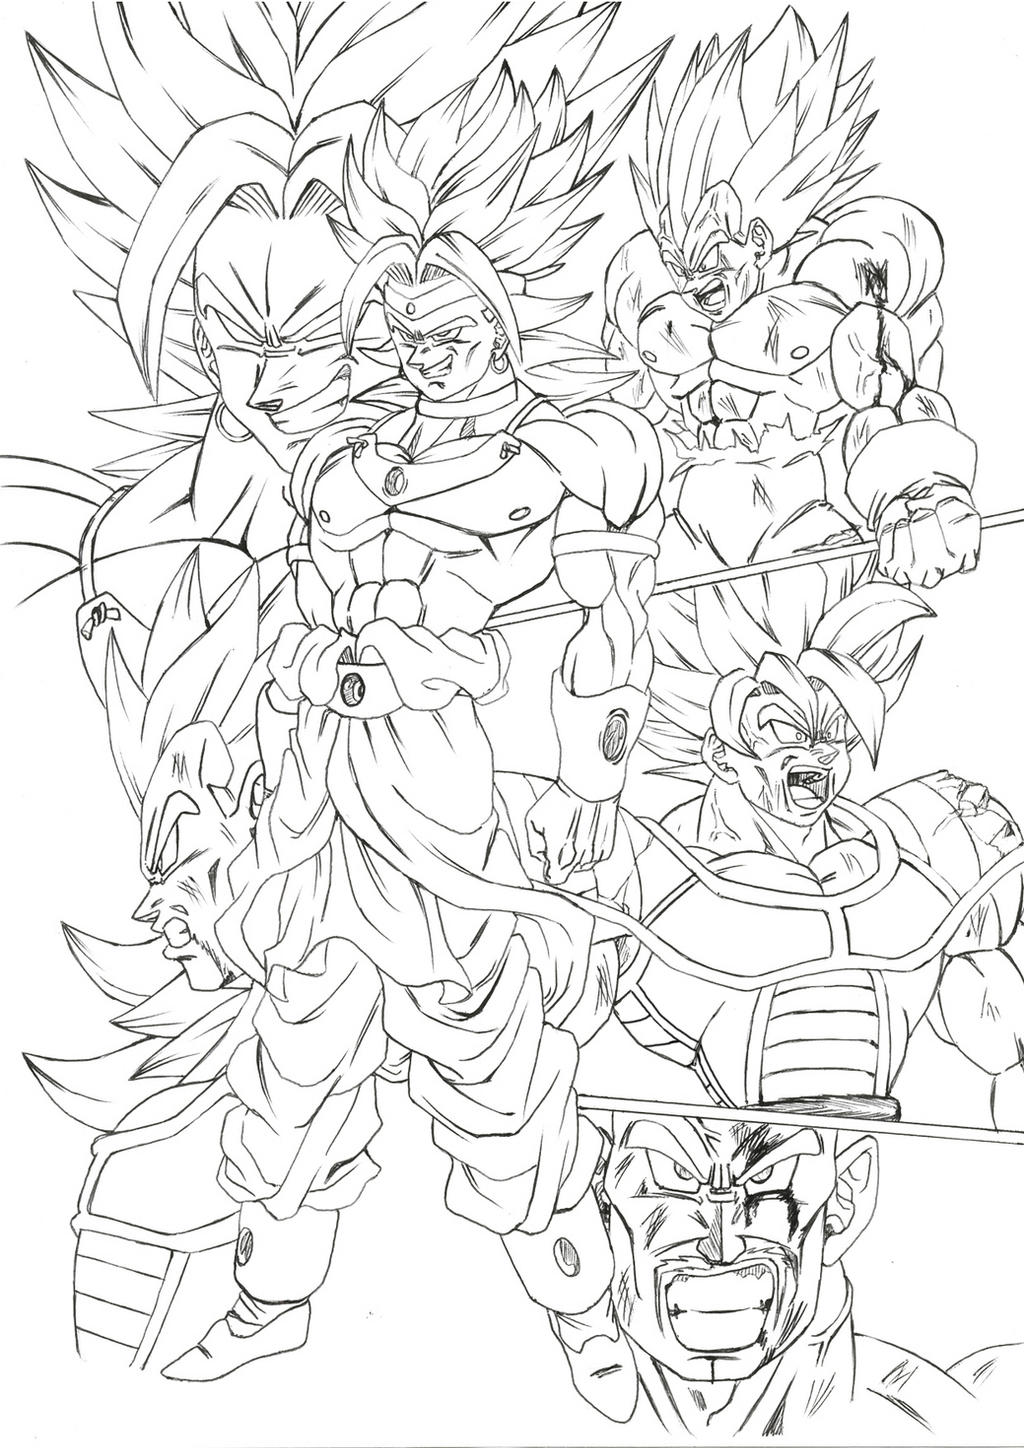 Coloring pages broly vs goku